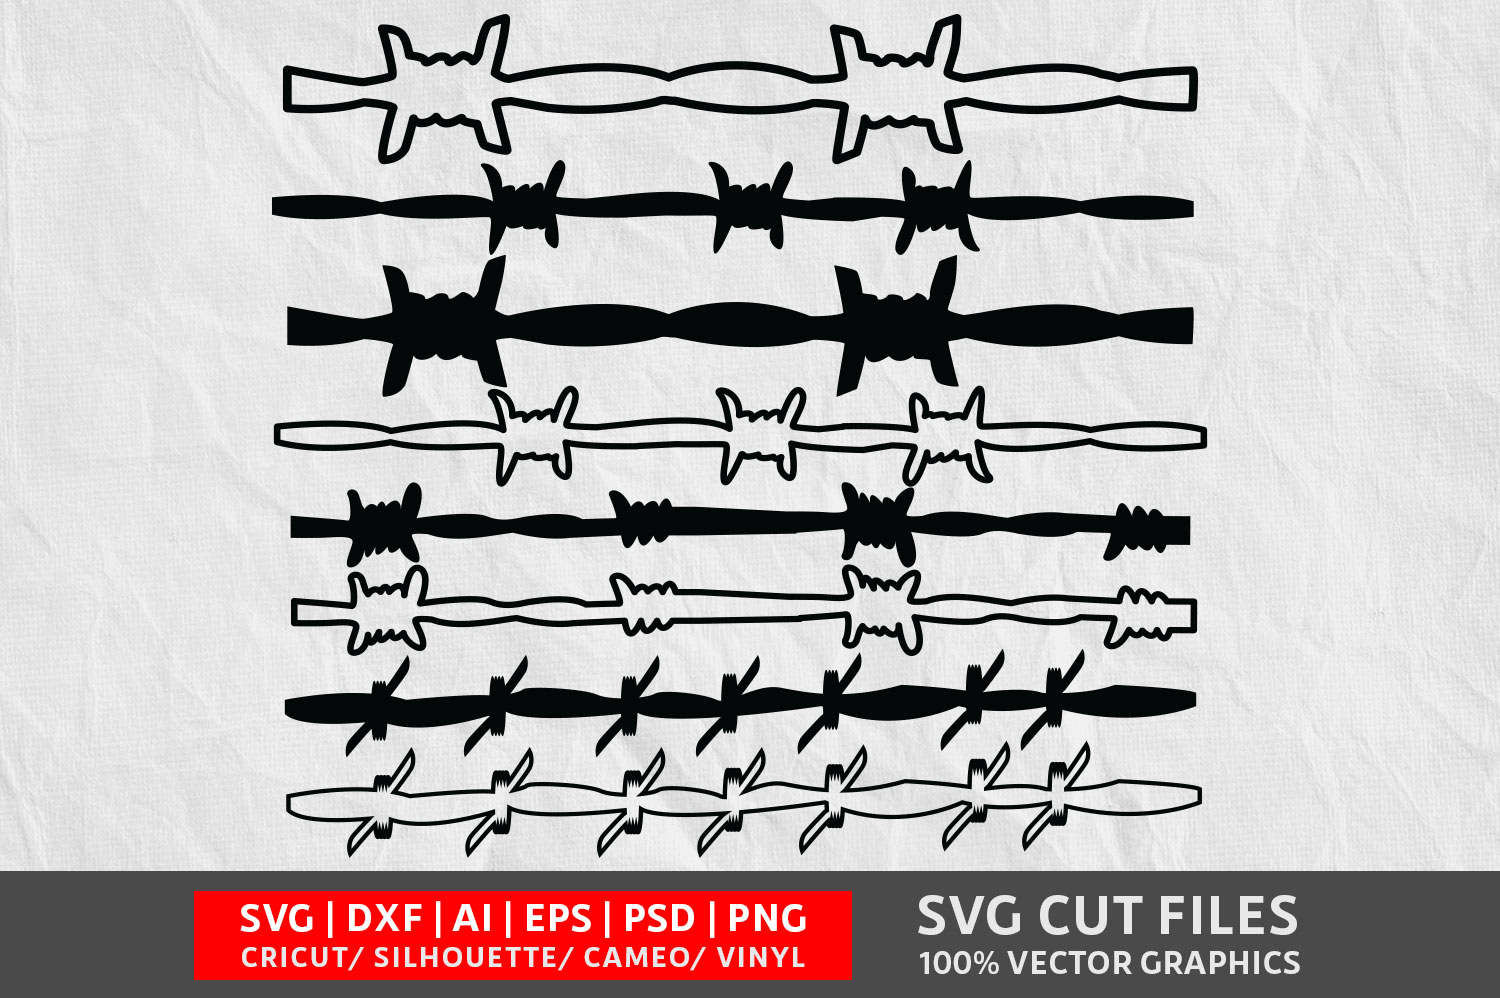 Download Free Barbed Wire Graphic By Design Palace Creative Fabrica for Cricut Explore, Silhouette and other cutting machines.